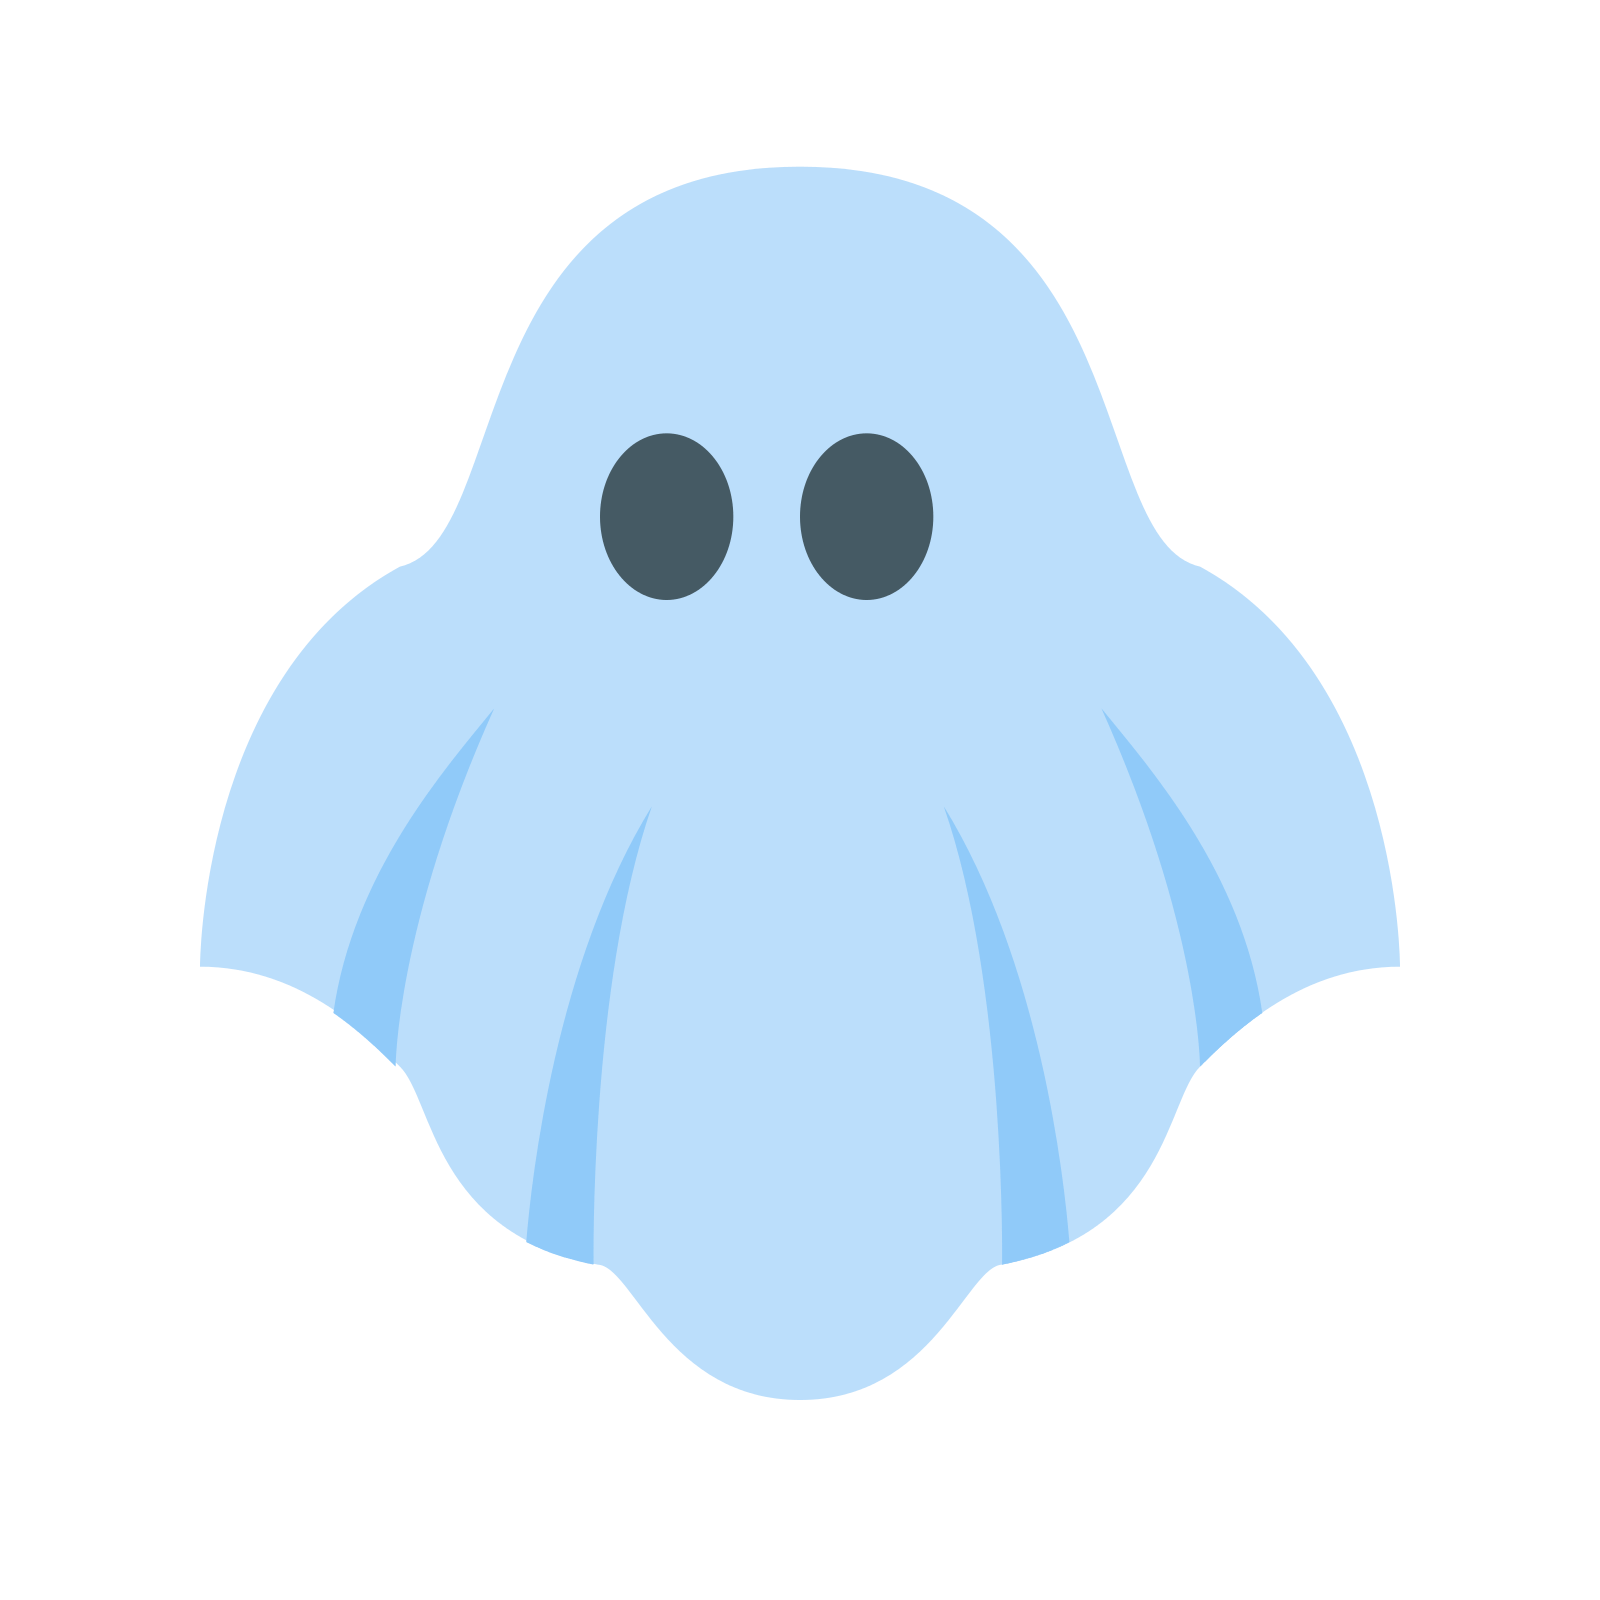 Drawn ghostly kasper Icons PNG SVG Kasper Free